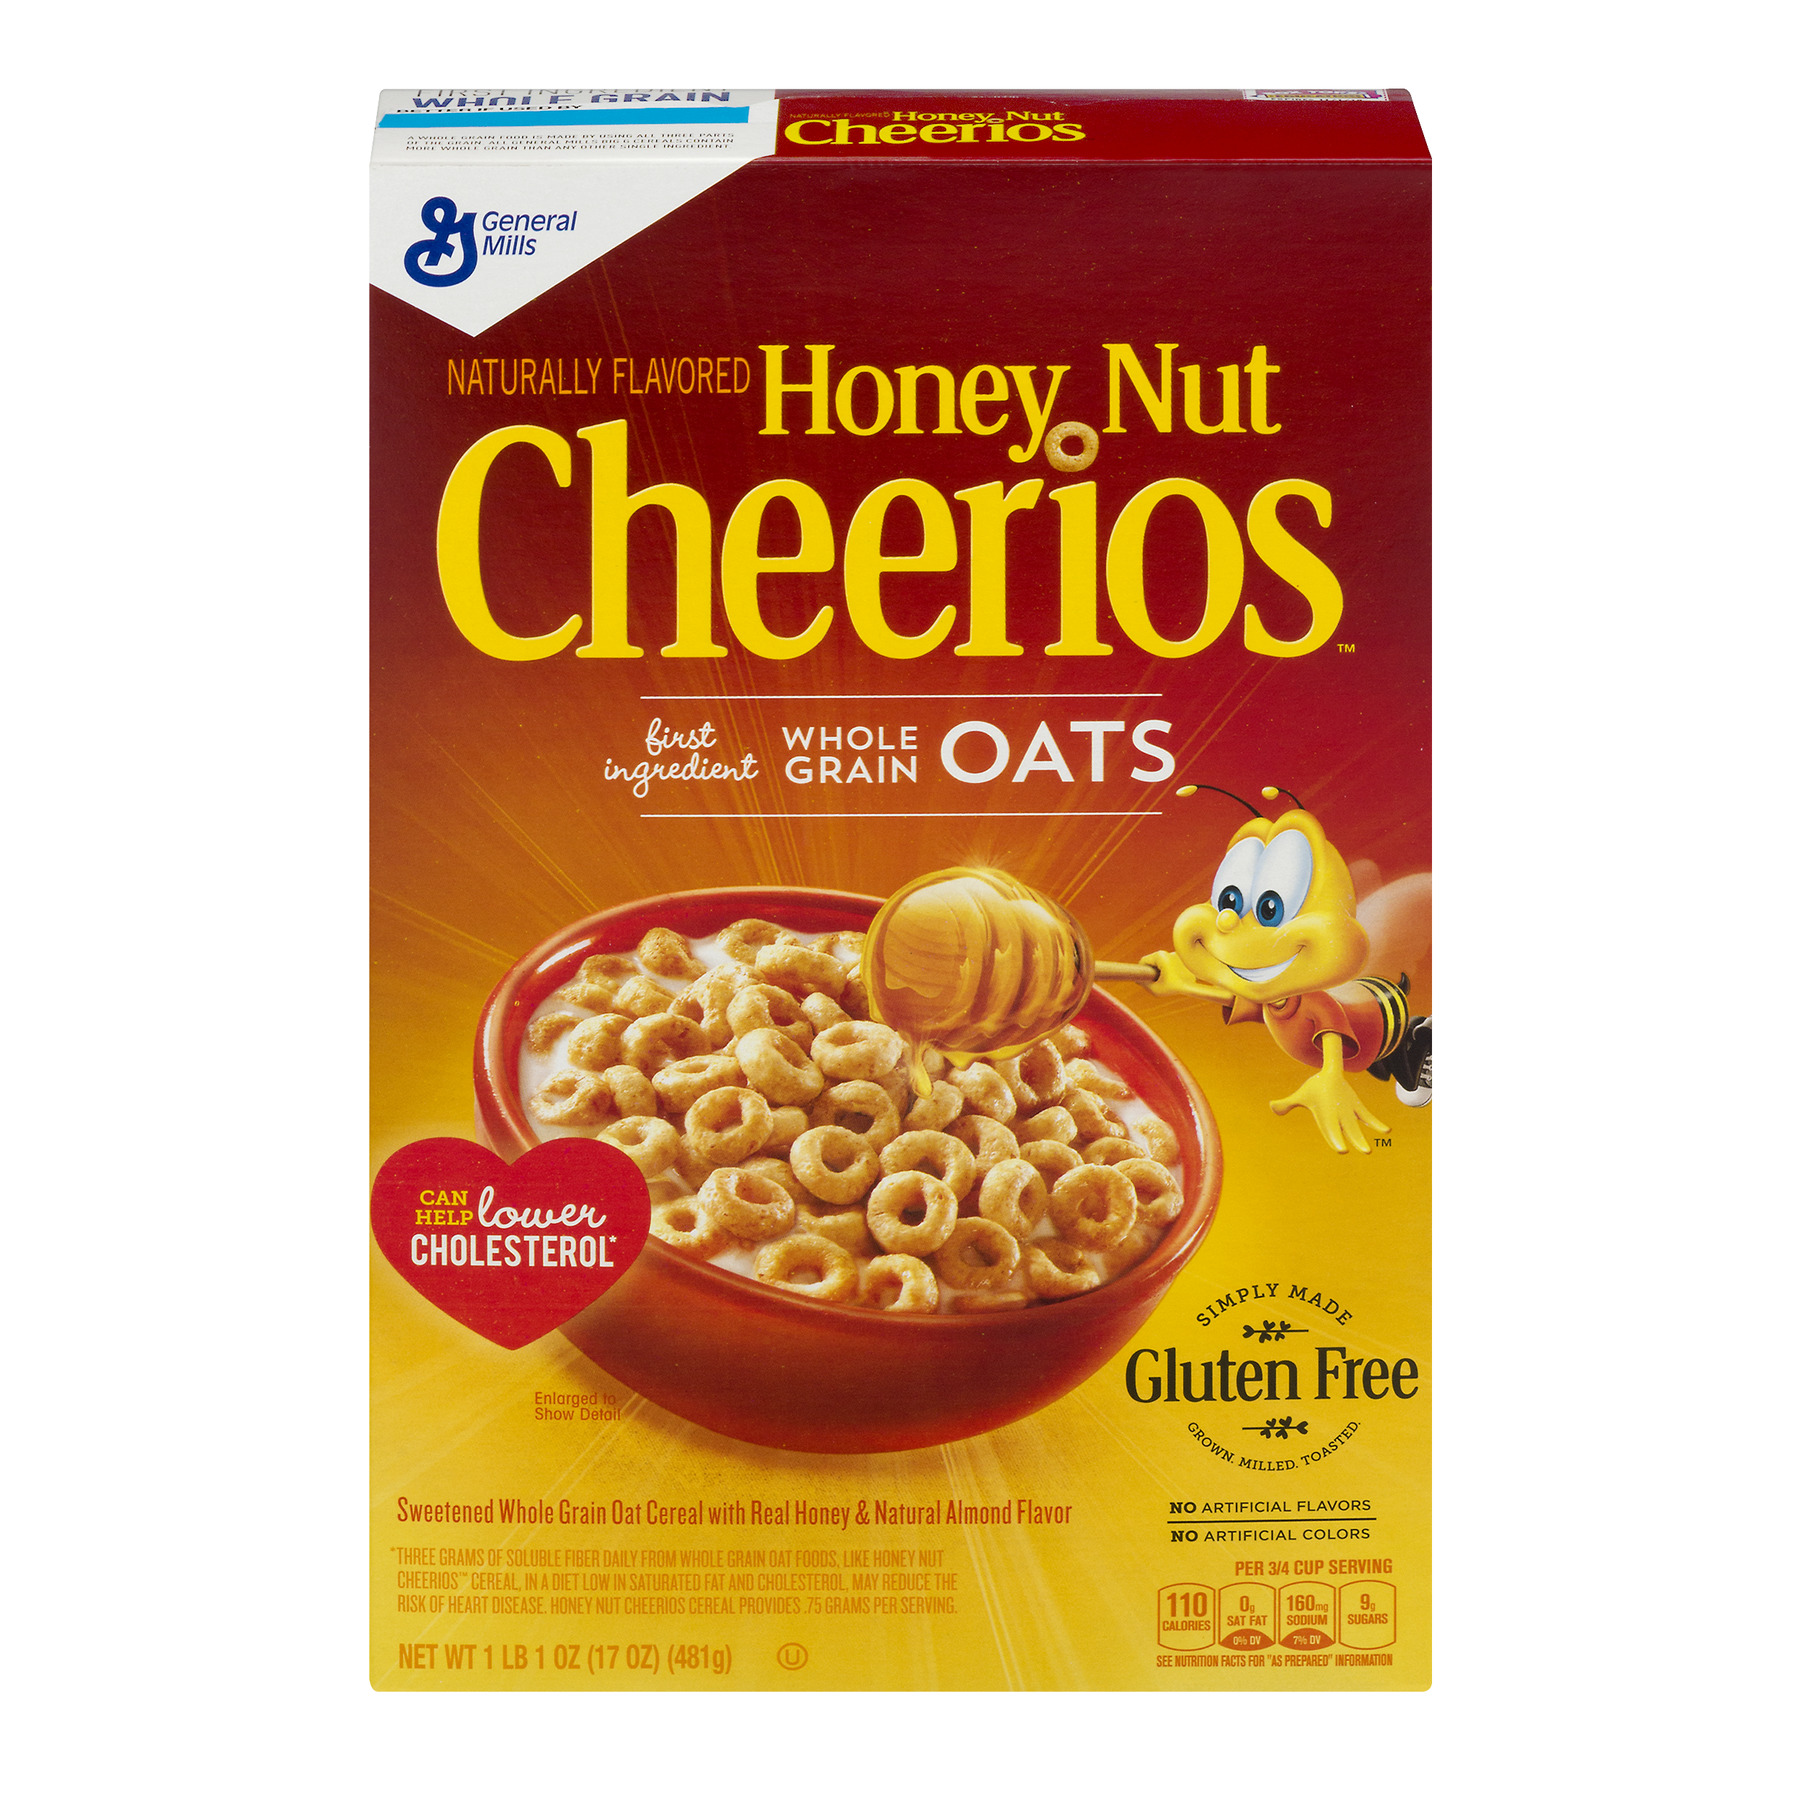 Honey Nut Cheerios Gluten Free Cereal 17 oz Box